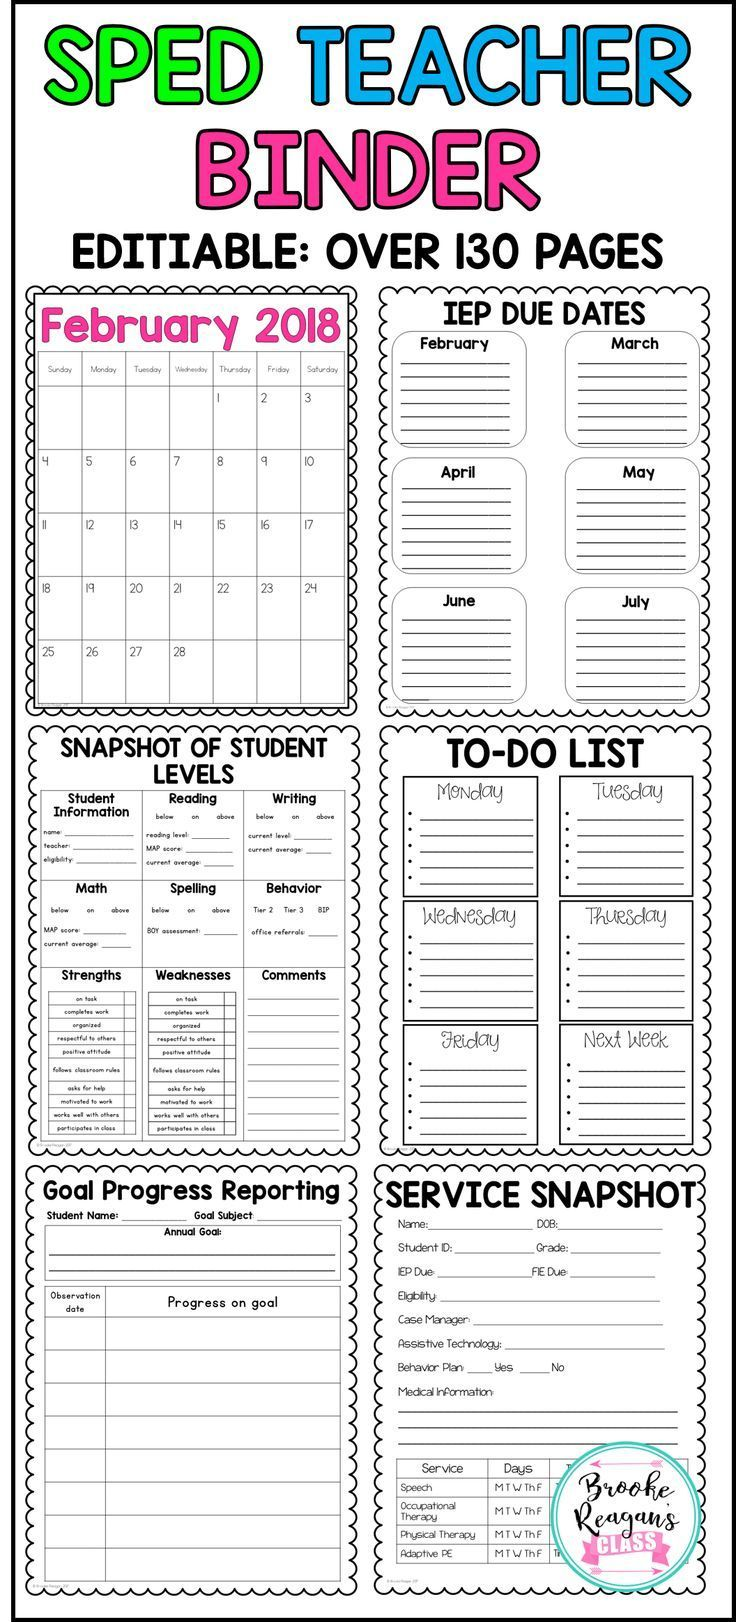 Special Education Teacher Binder. Editable to meet your classroom needs. Over 130 pages combined! A special education teacher MUST HAVE!